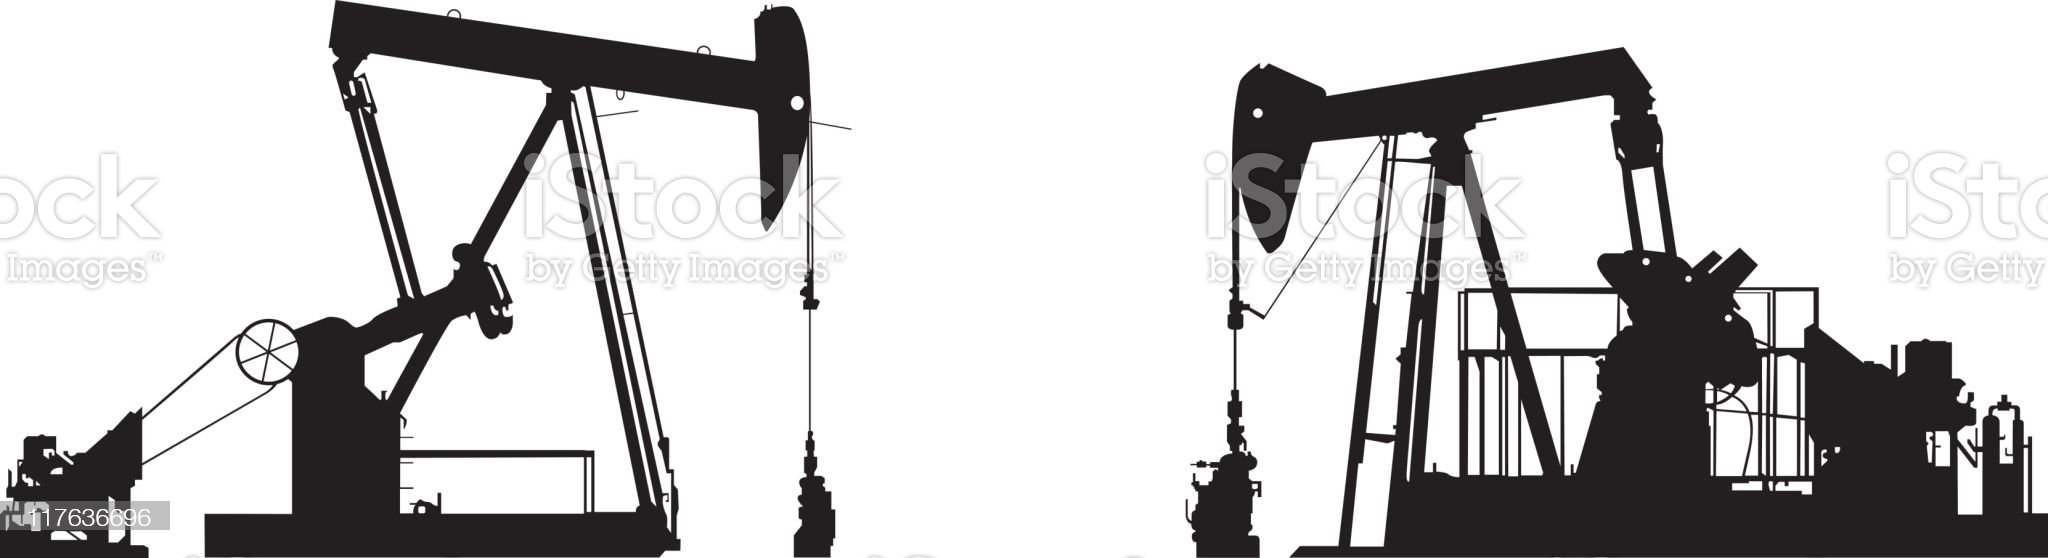 Oil Well Pump Drawings royalty-free stock vector art